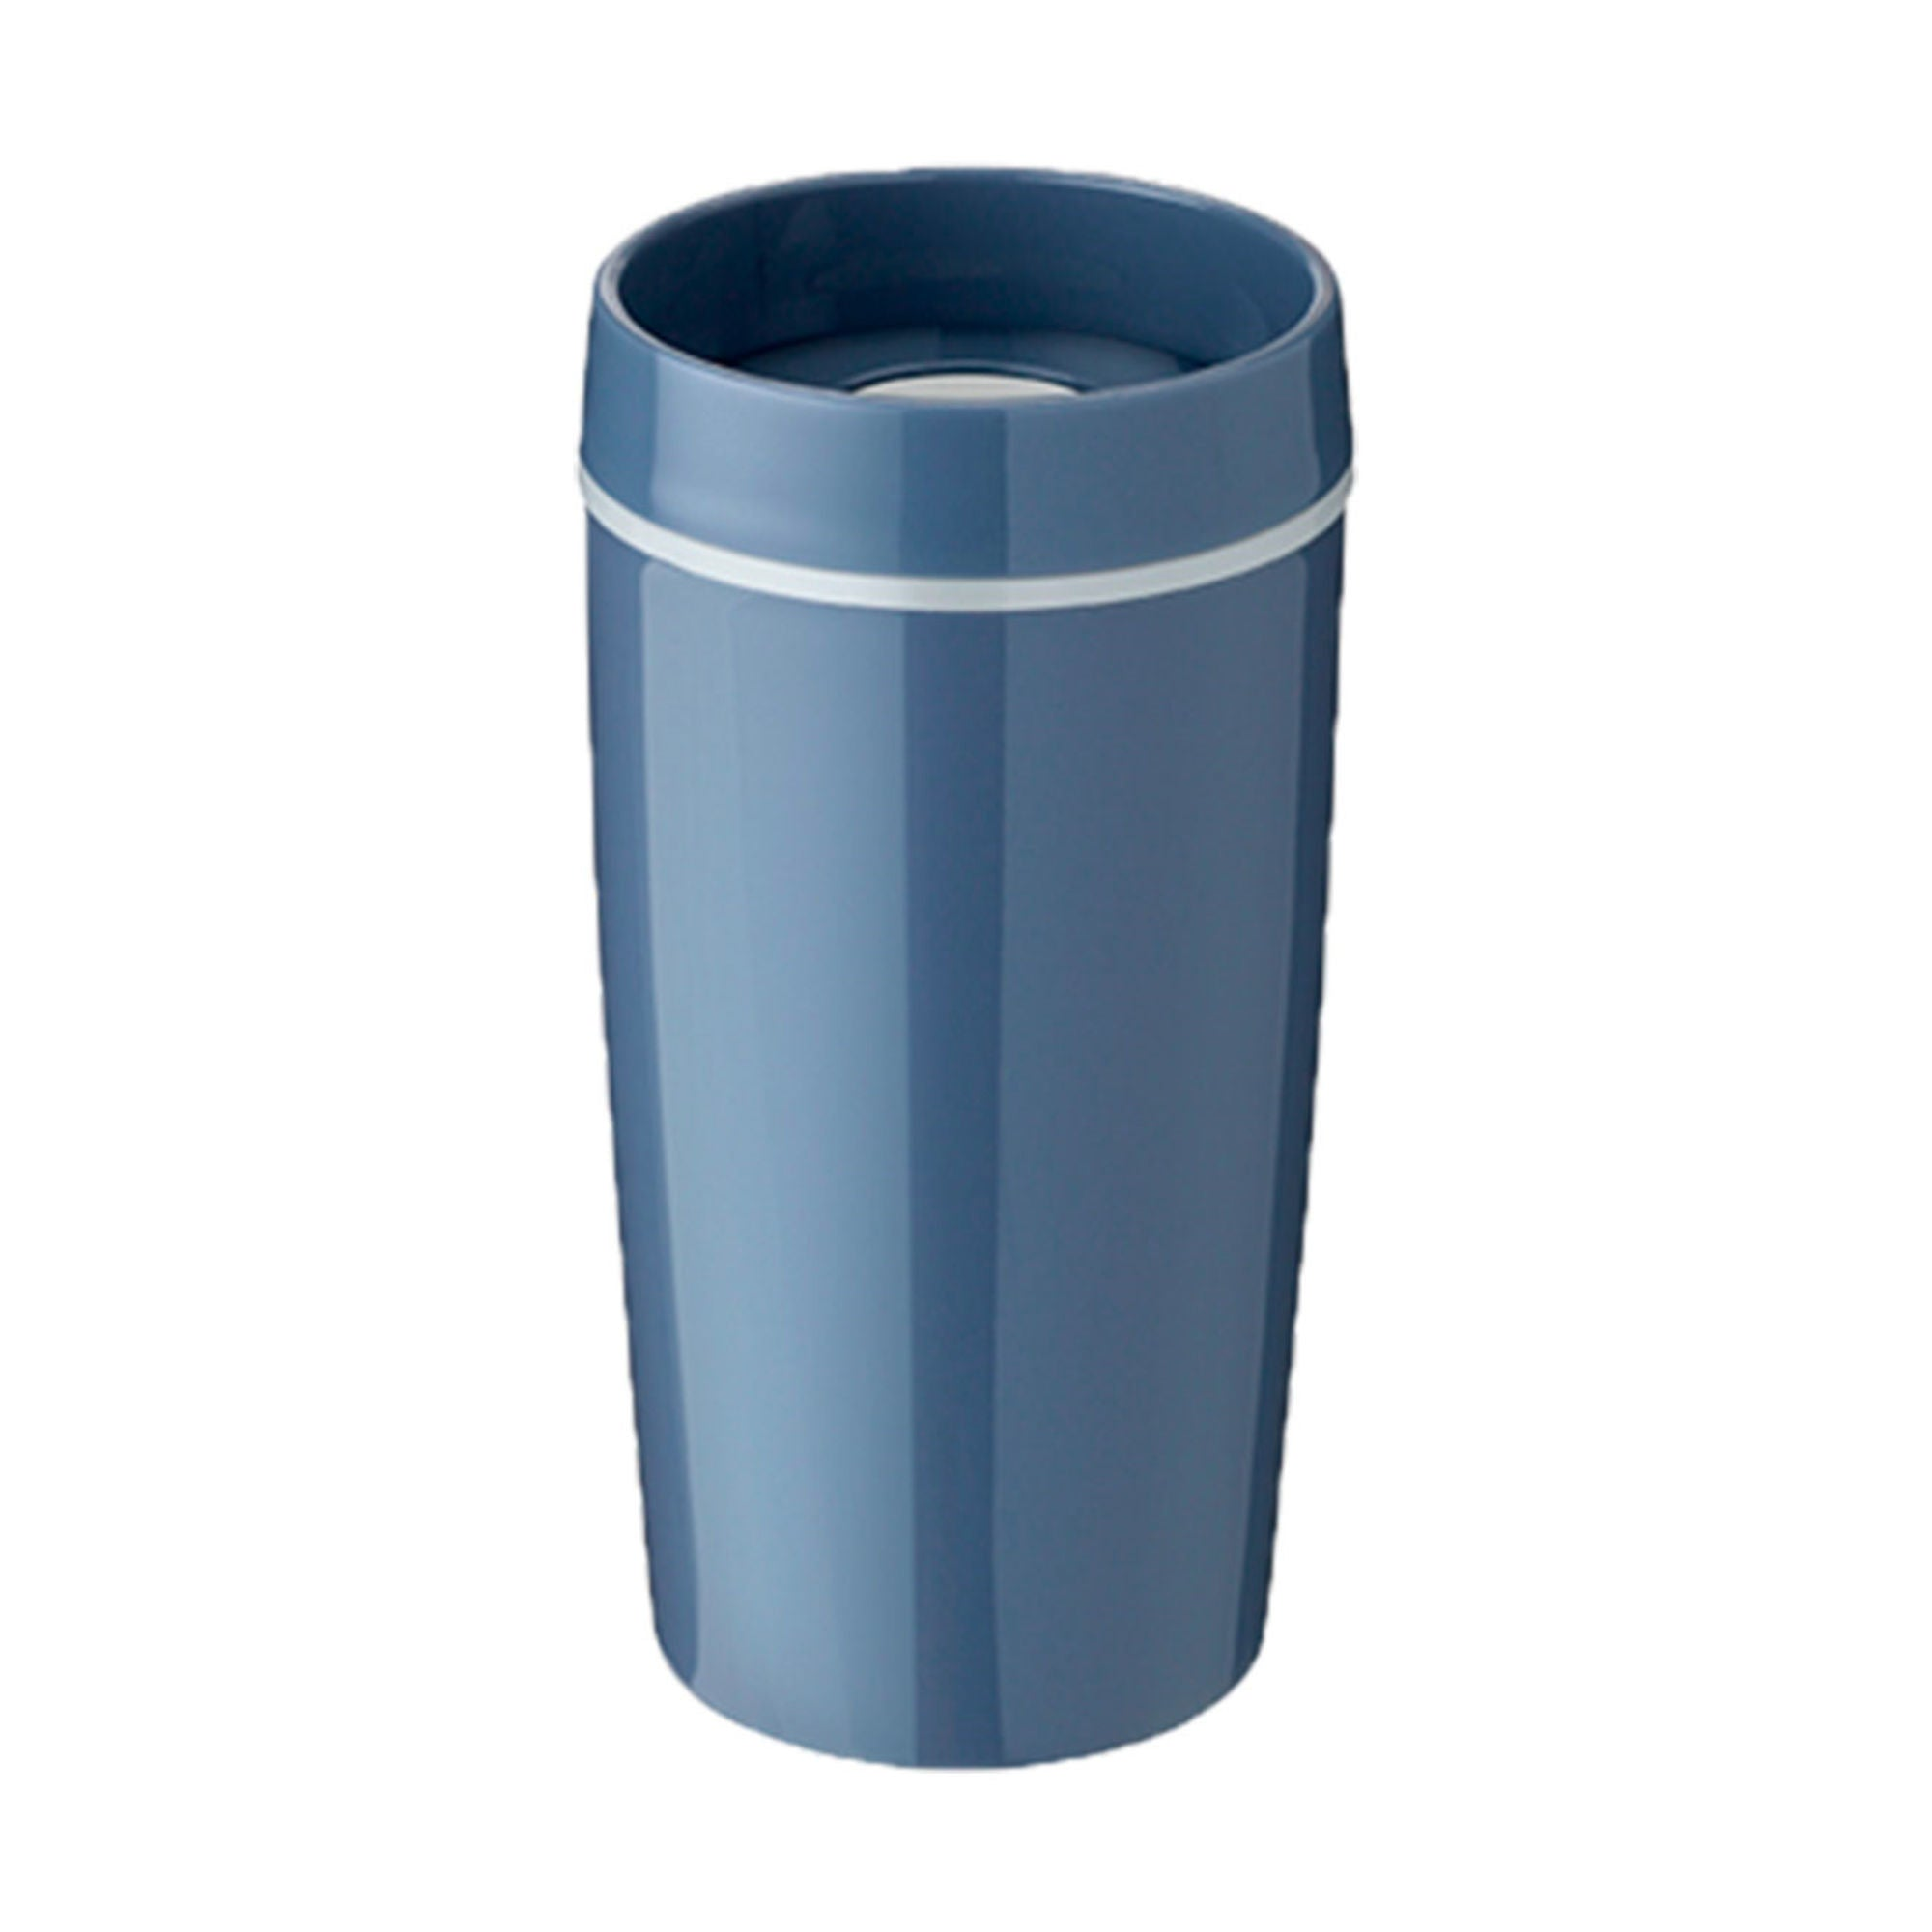 Stelton Bring-It To-Go mug, blue (340 ml)